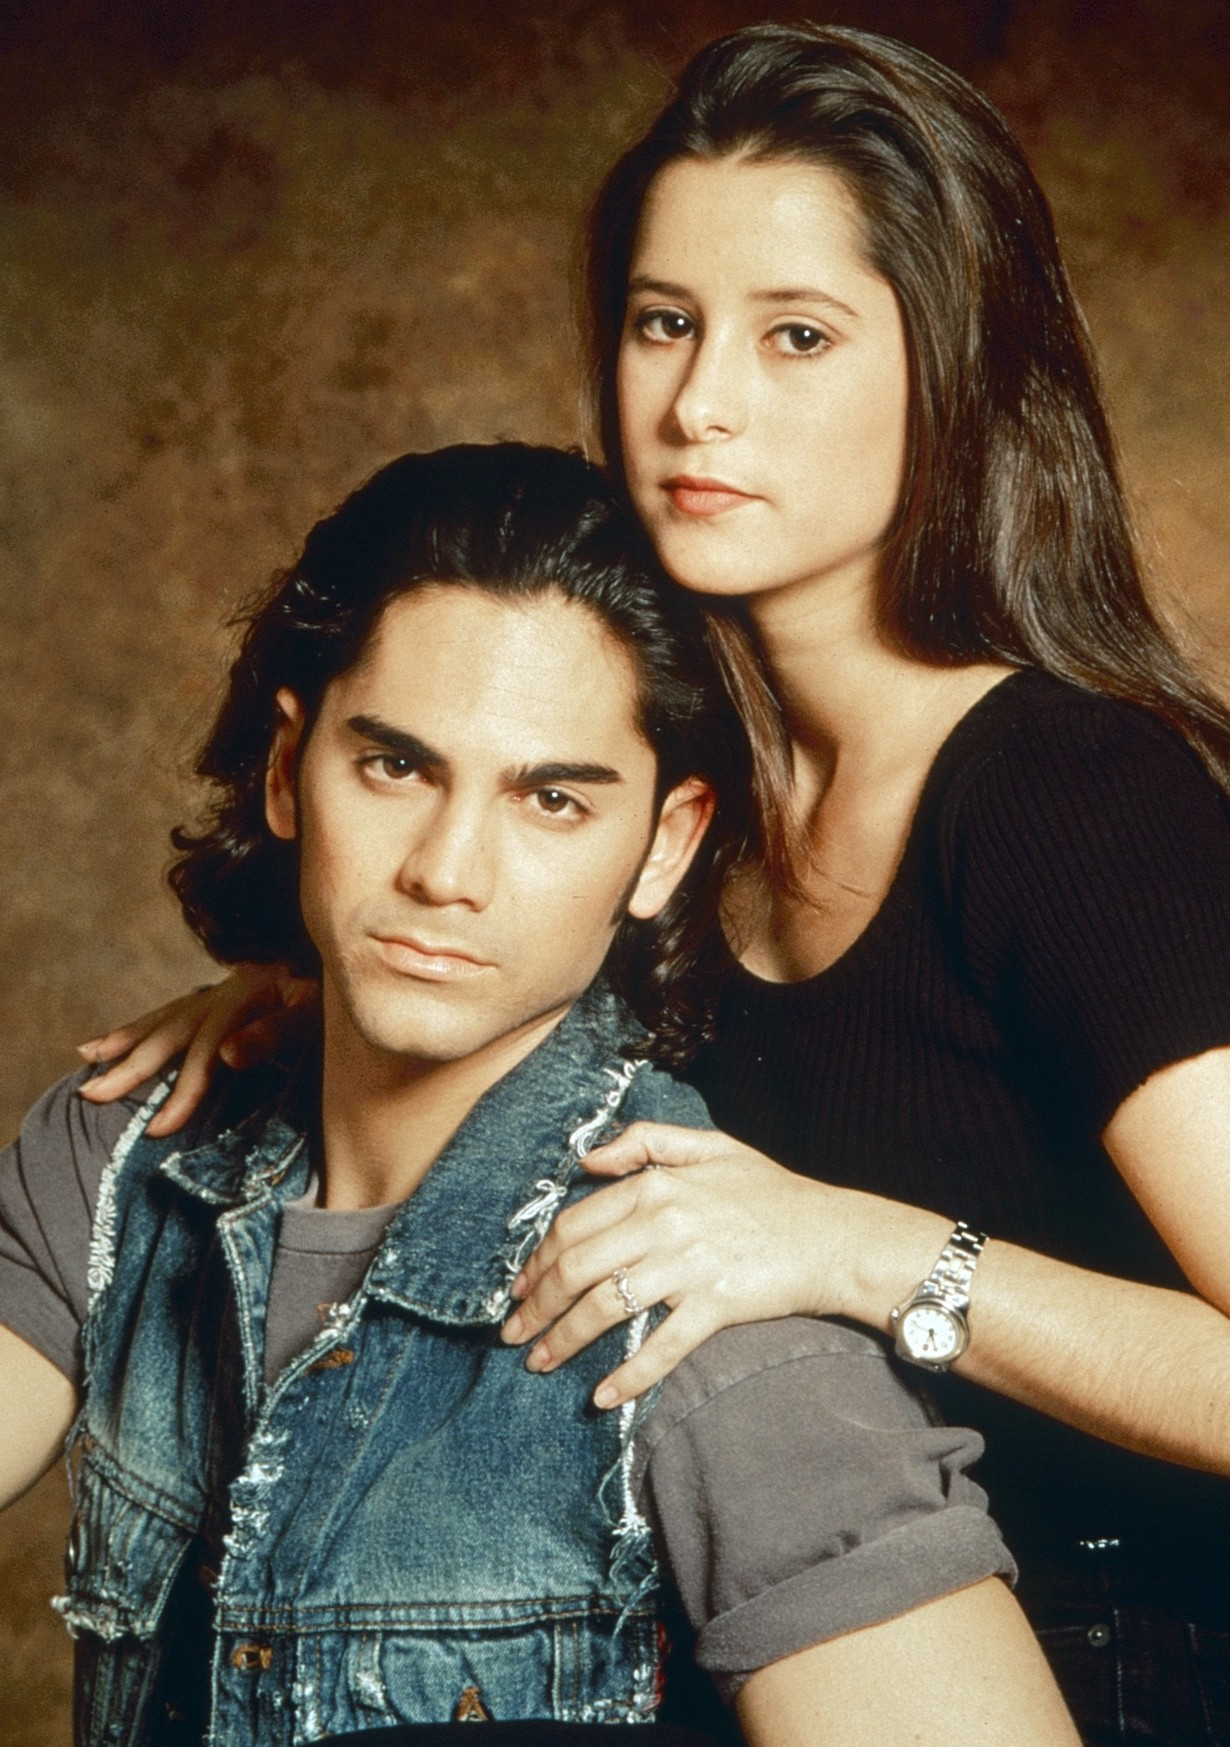 GENERAL HOSPITAL, from left: Michael Sutton, Kimberly McCullough, (1995), 1963- , ph: Craig Sjodin/©ABC /Courtesy Everett Collection